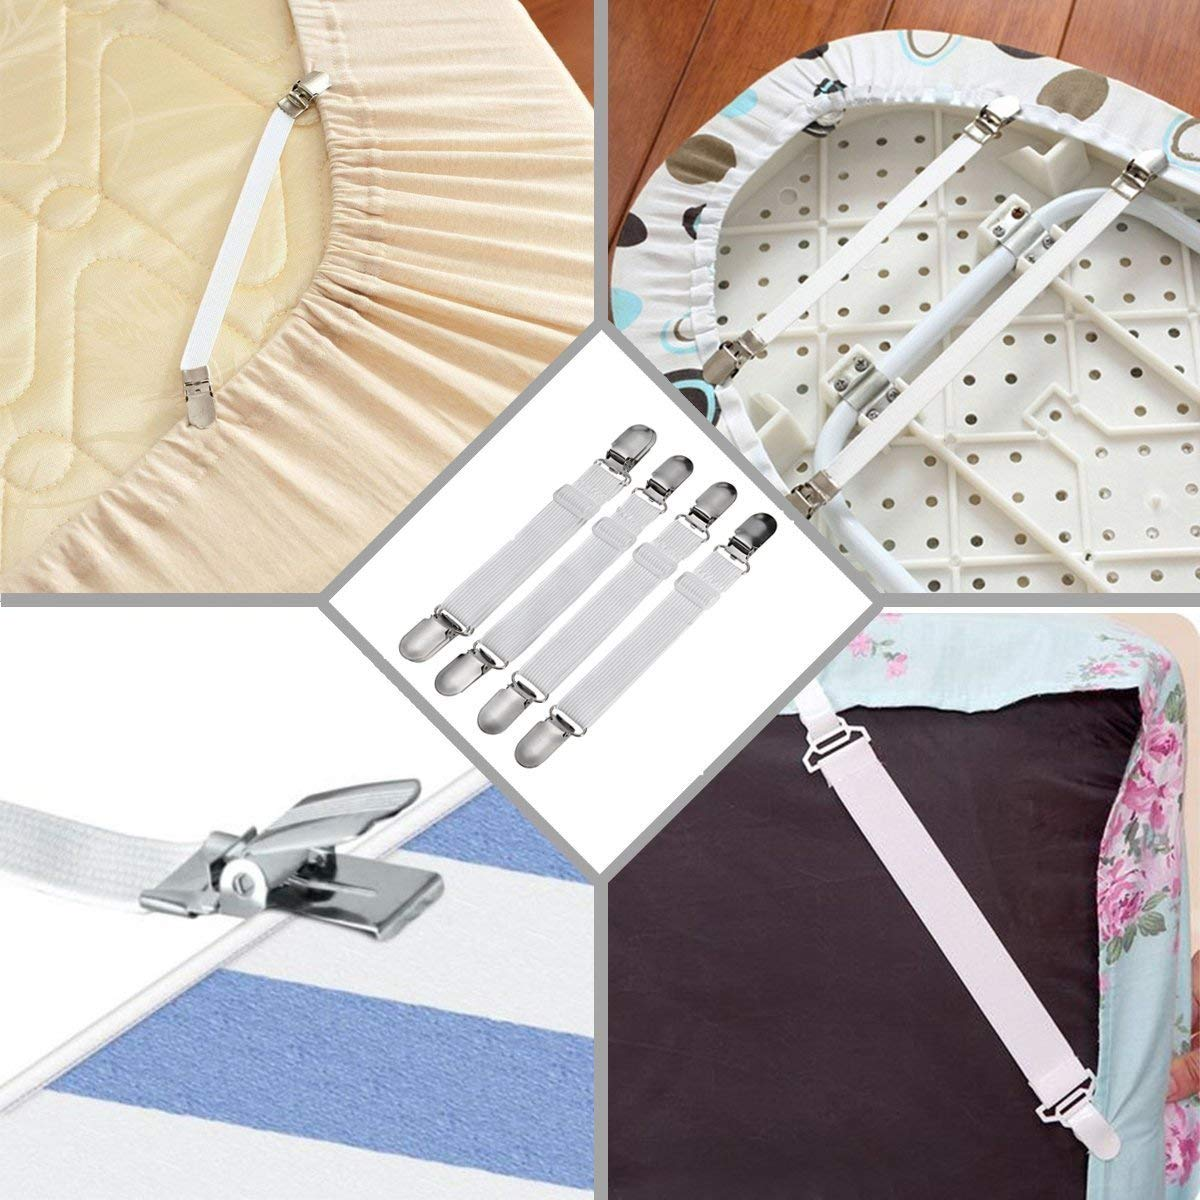 wongeto The Designs Adjustable Heavy Duty Bed Sheet Grippers Holders Cover Suspenders Set of 4